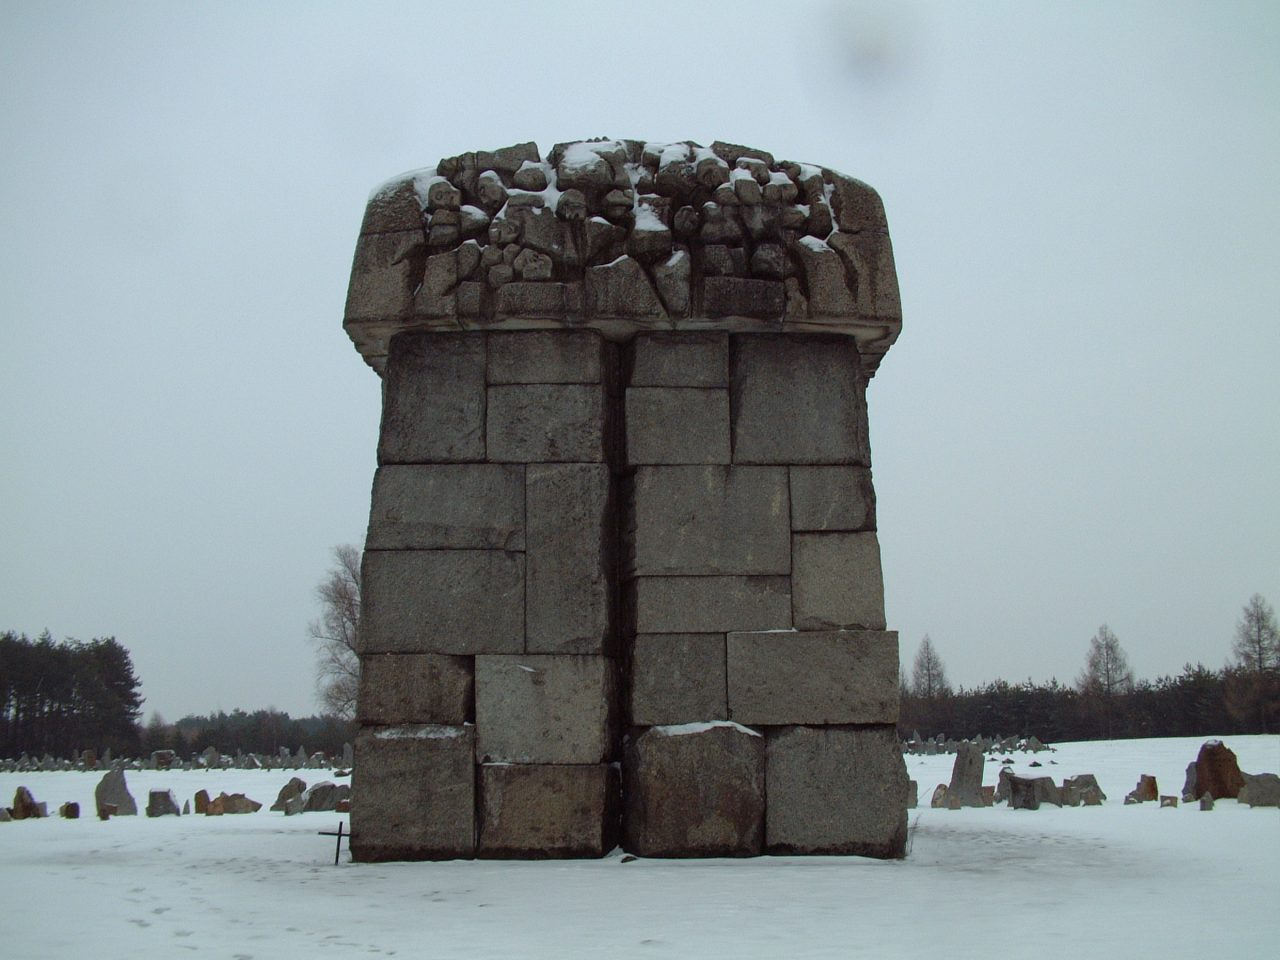 UPRISING OF PRISONERS AT TREBLINKA